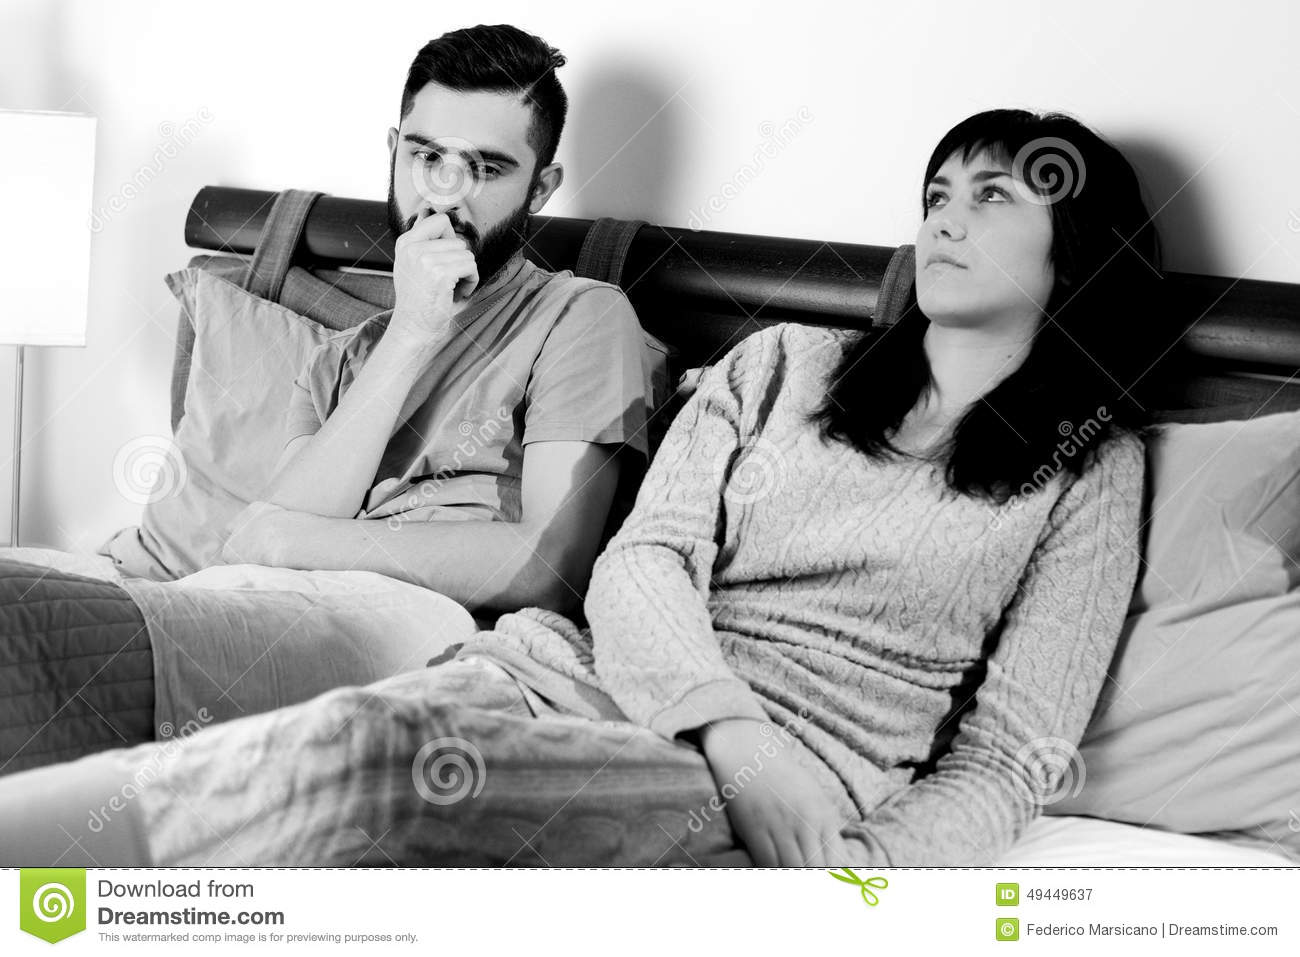 Black and white portrait of sad couple in bed after fight not talking